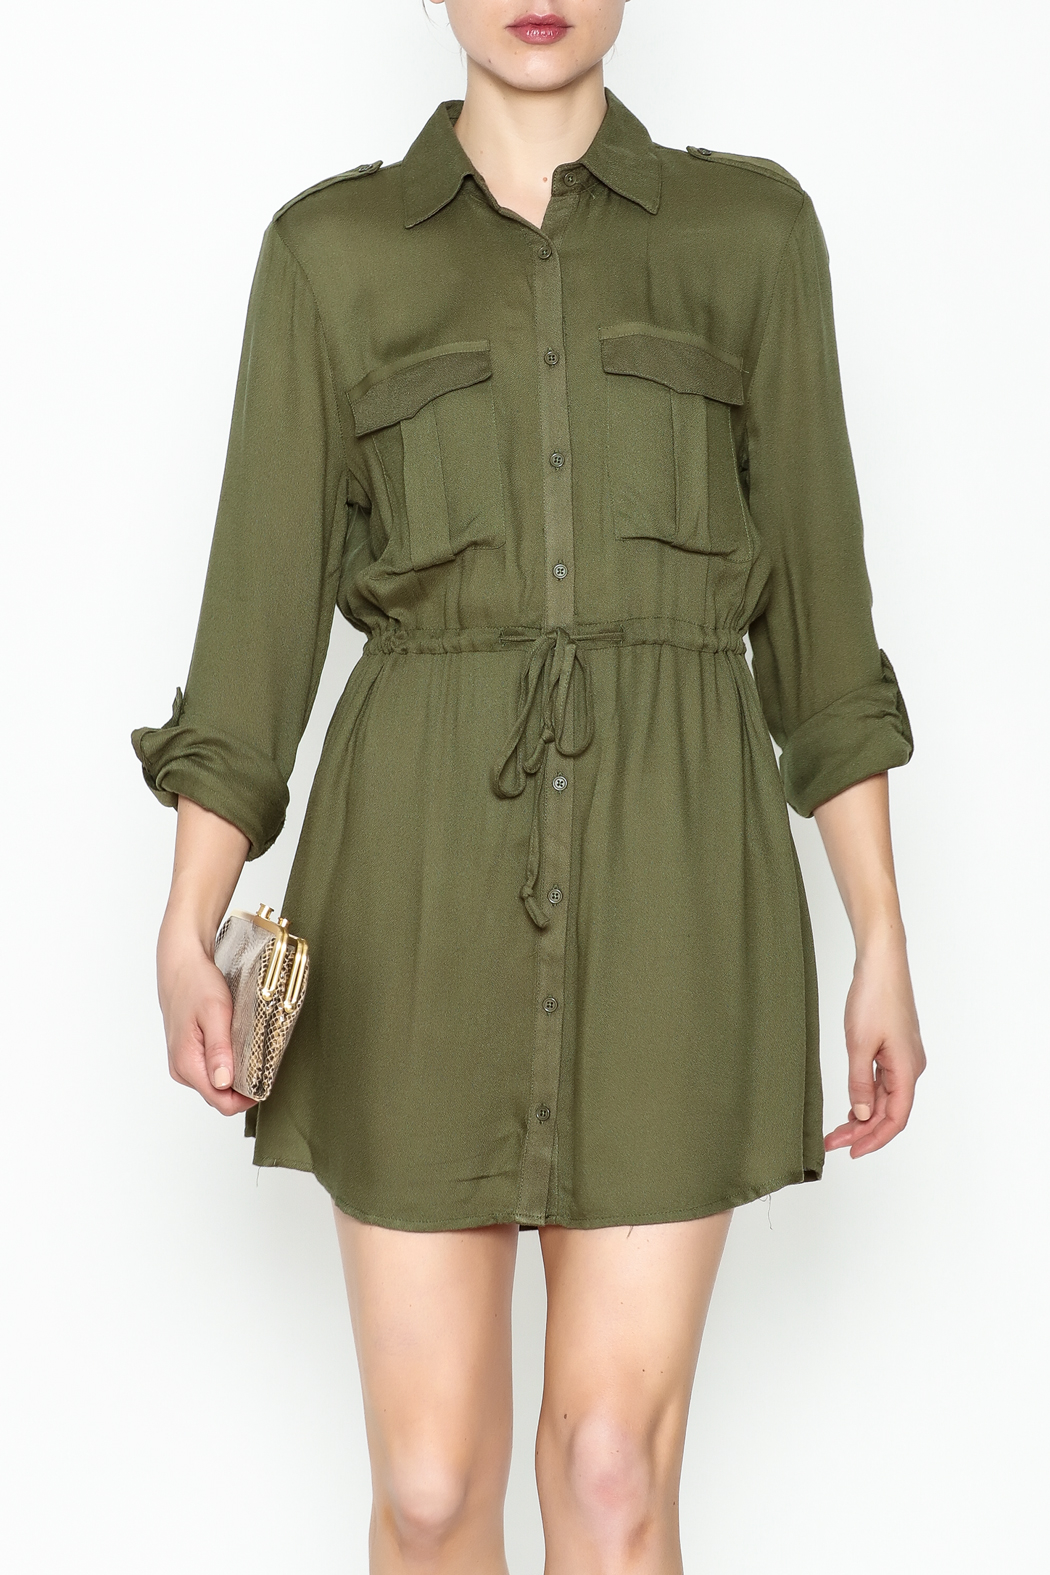 Jack by BB Dakota Olive Green Shirt Dress - Front Cropped Image